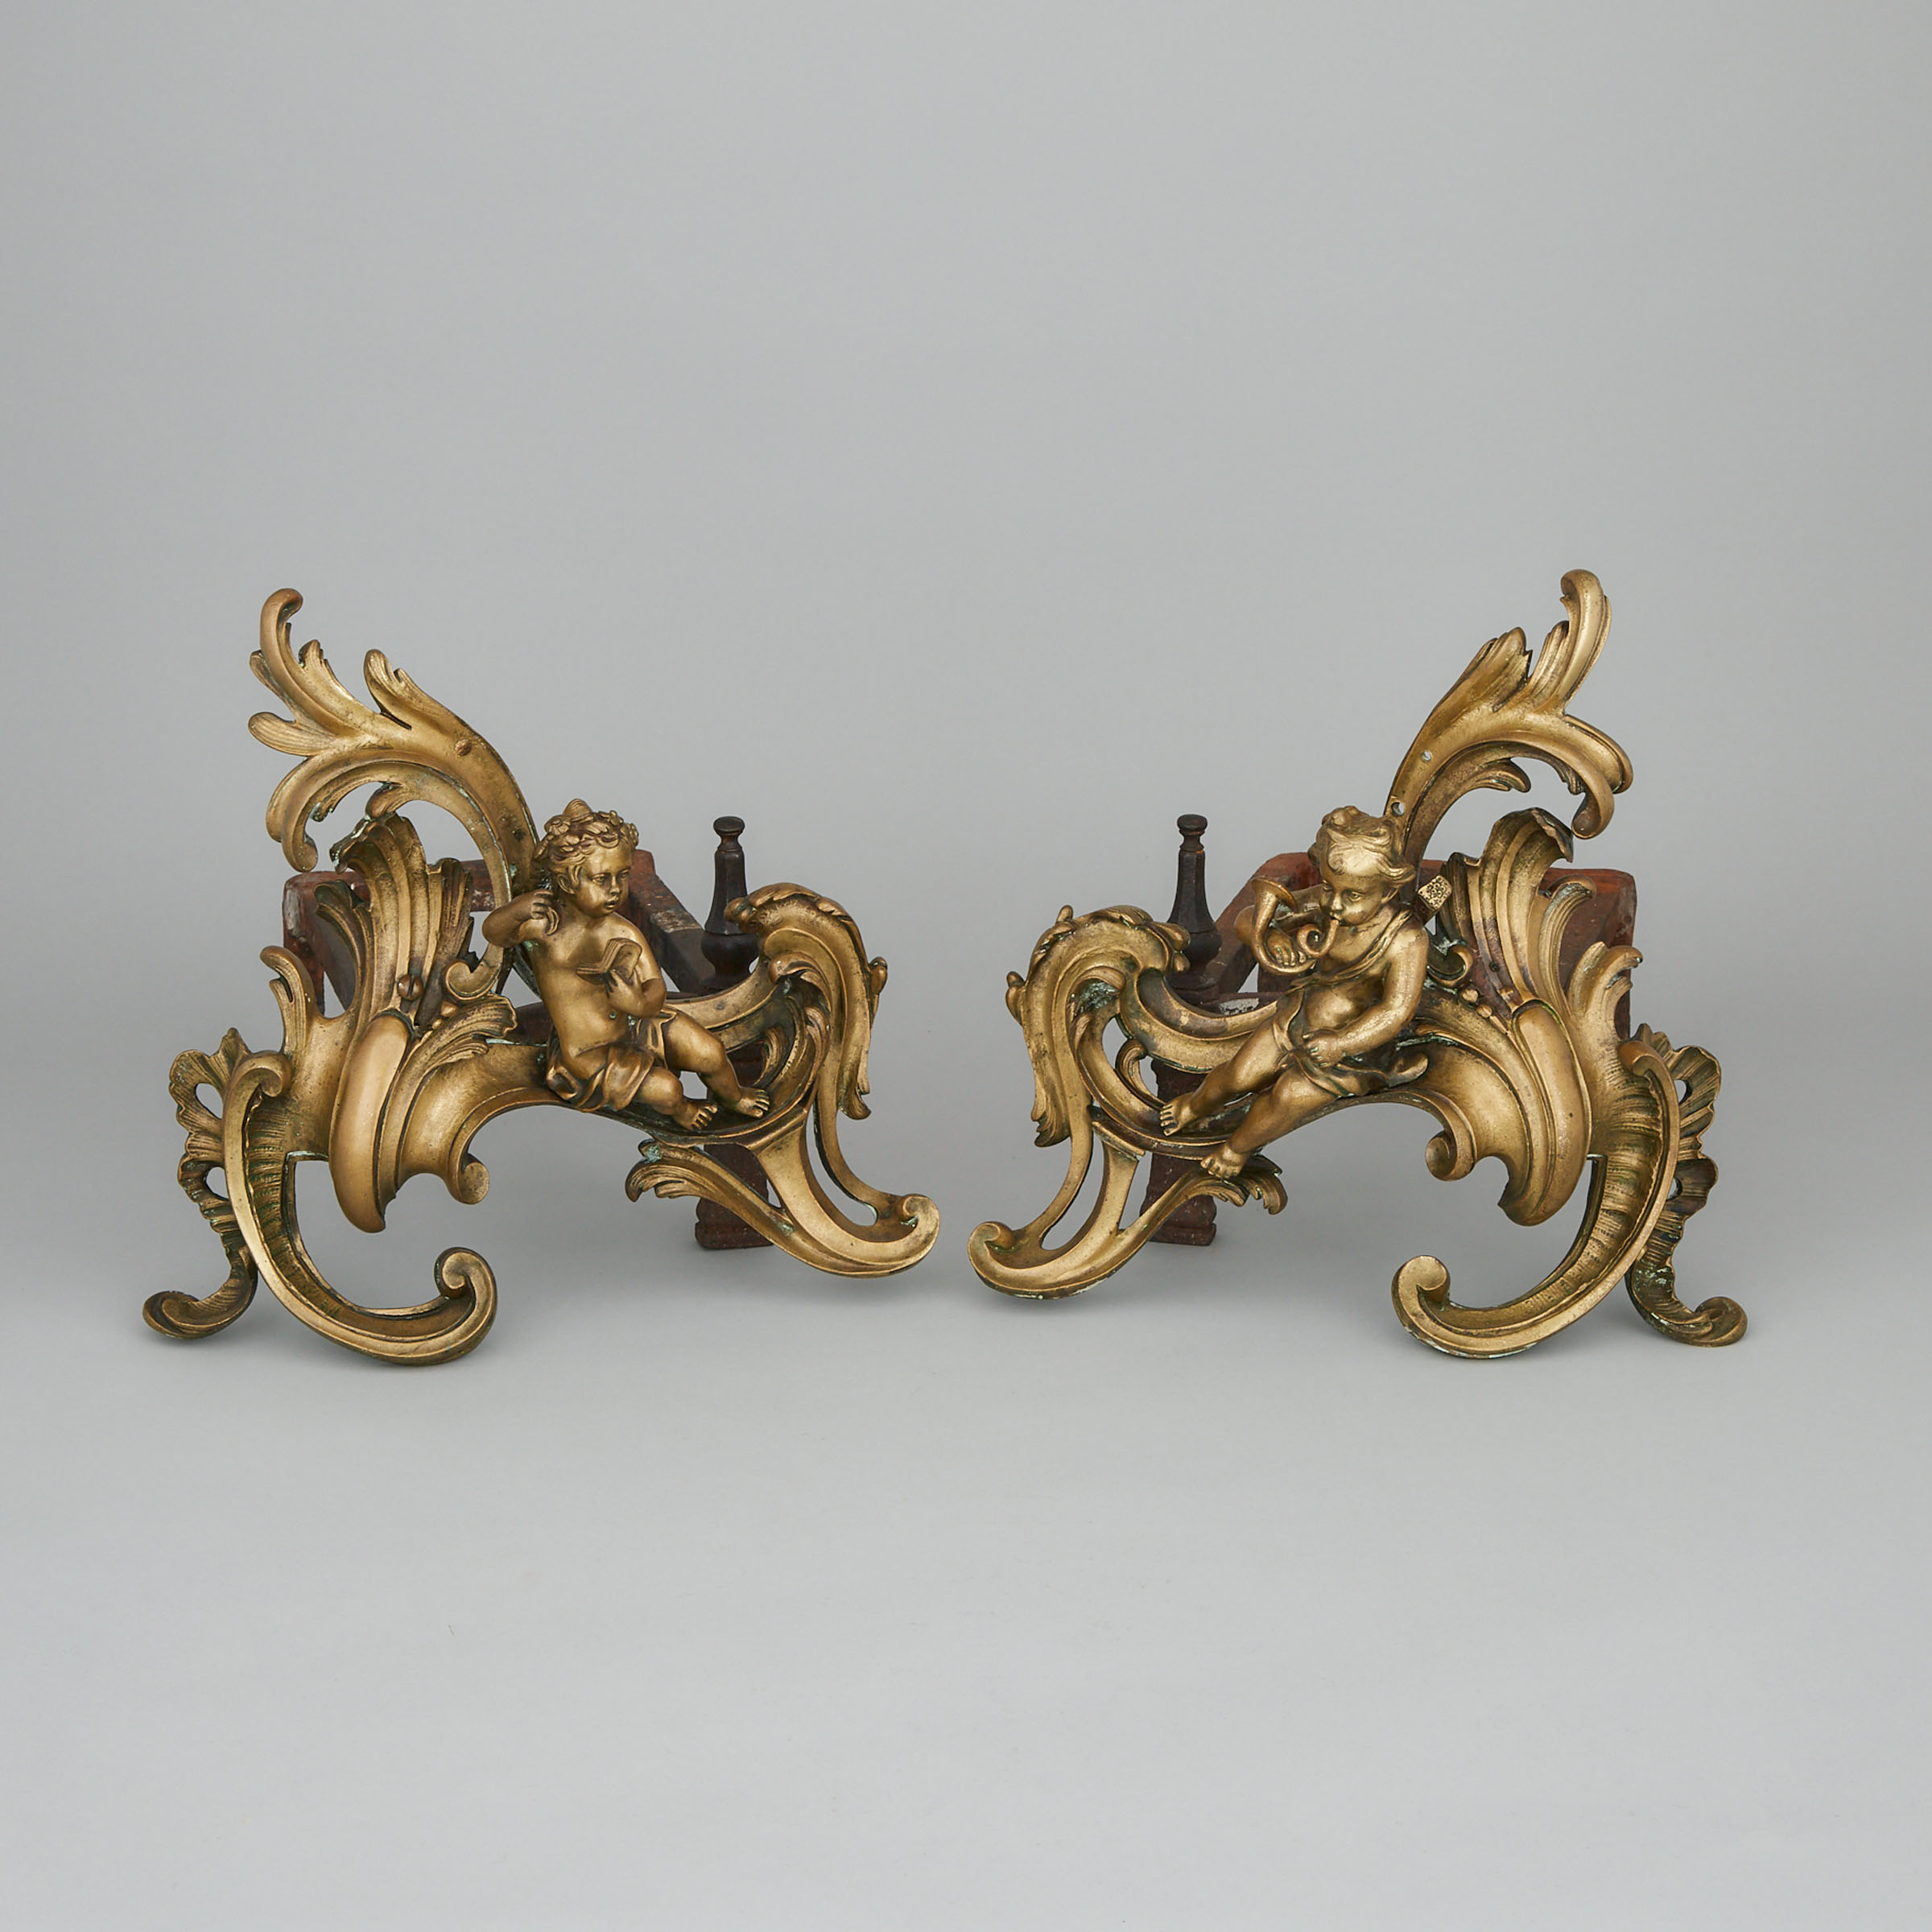 Pair of Louis XV Gilt Bronze Figural Chenets, mid-18th century